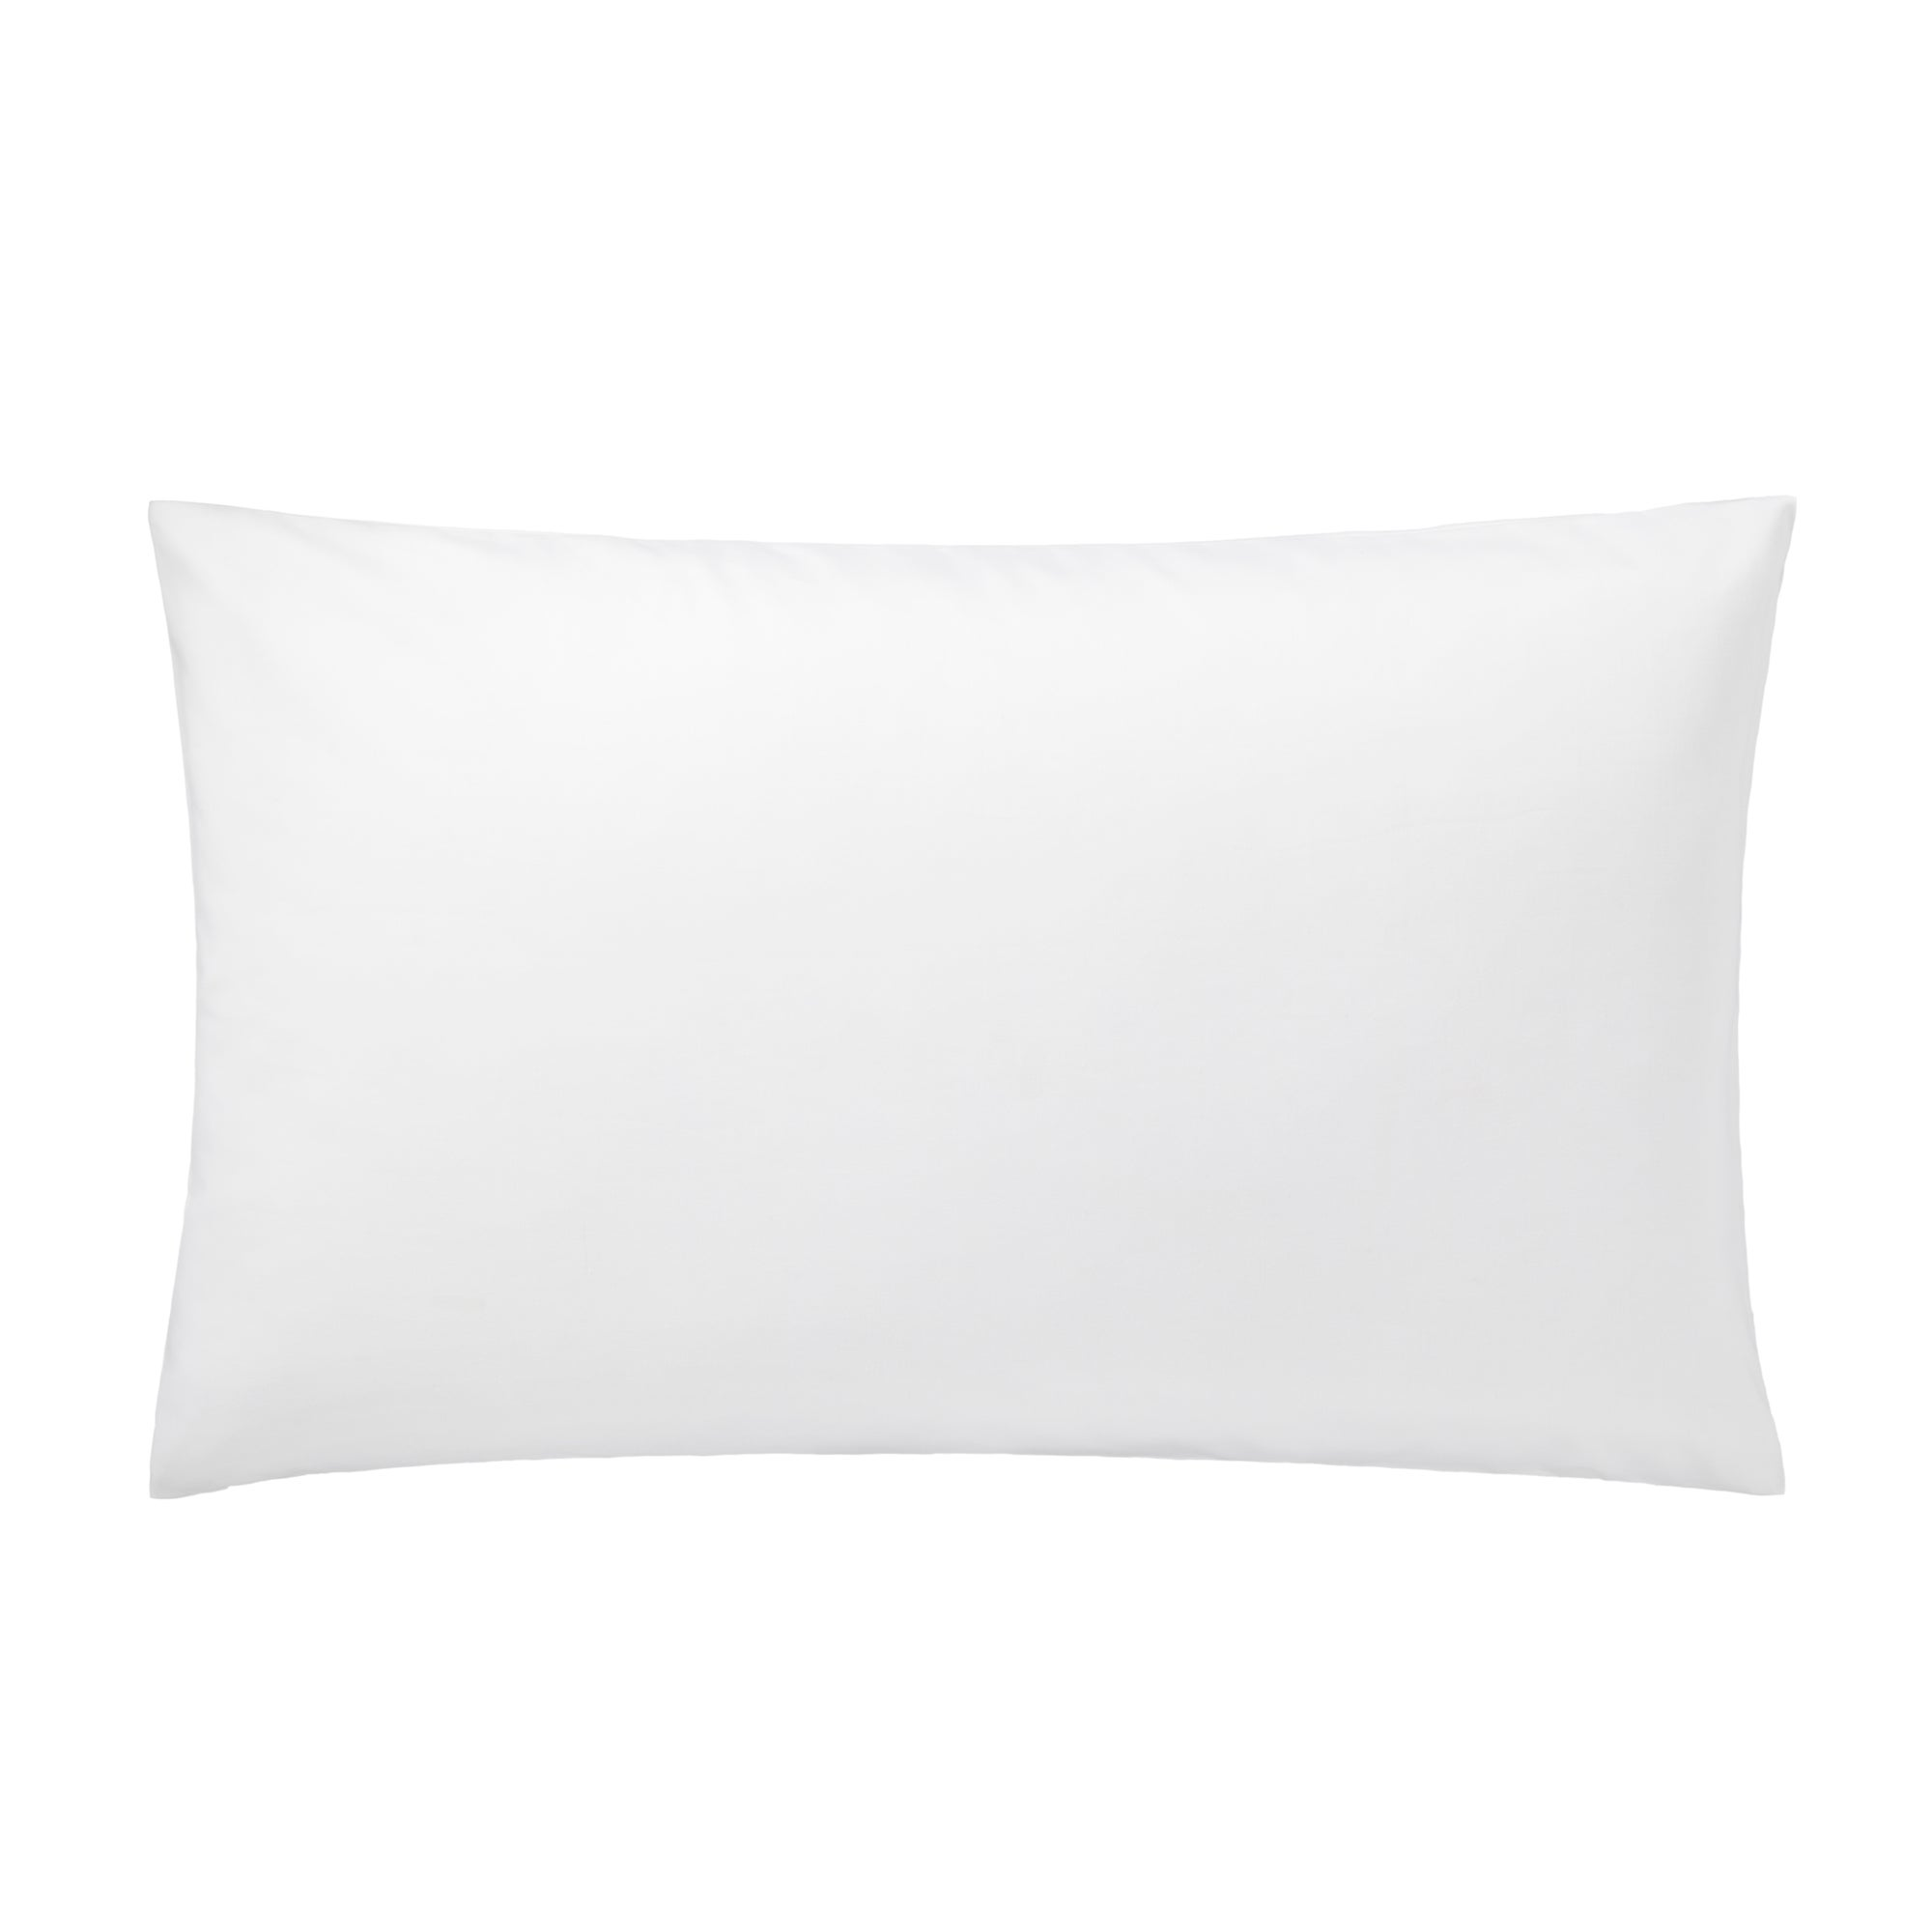 White Hotel Pima Plain 400 Thread Count Collection Housewife Pillowcase